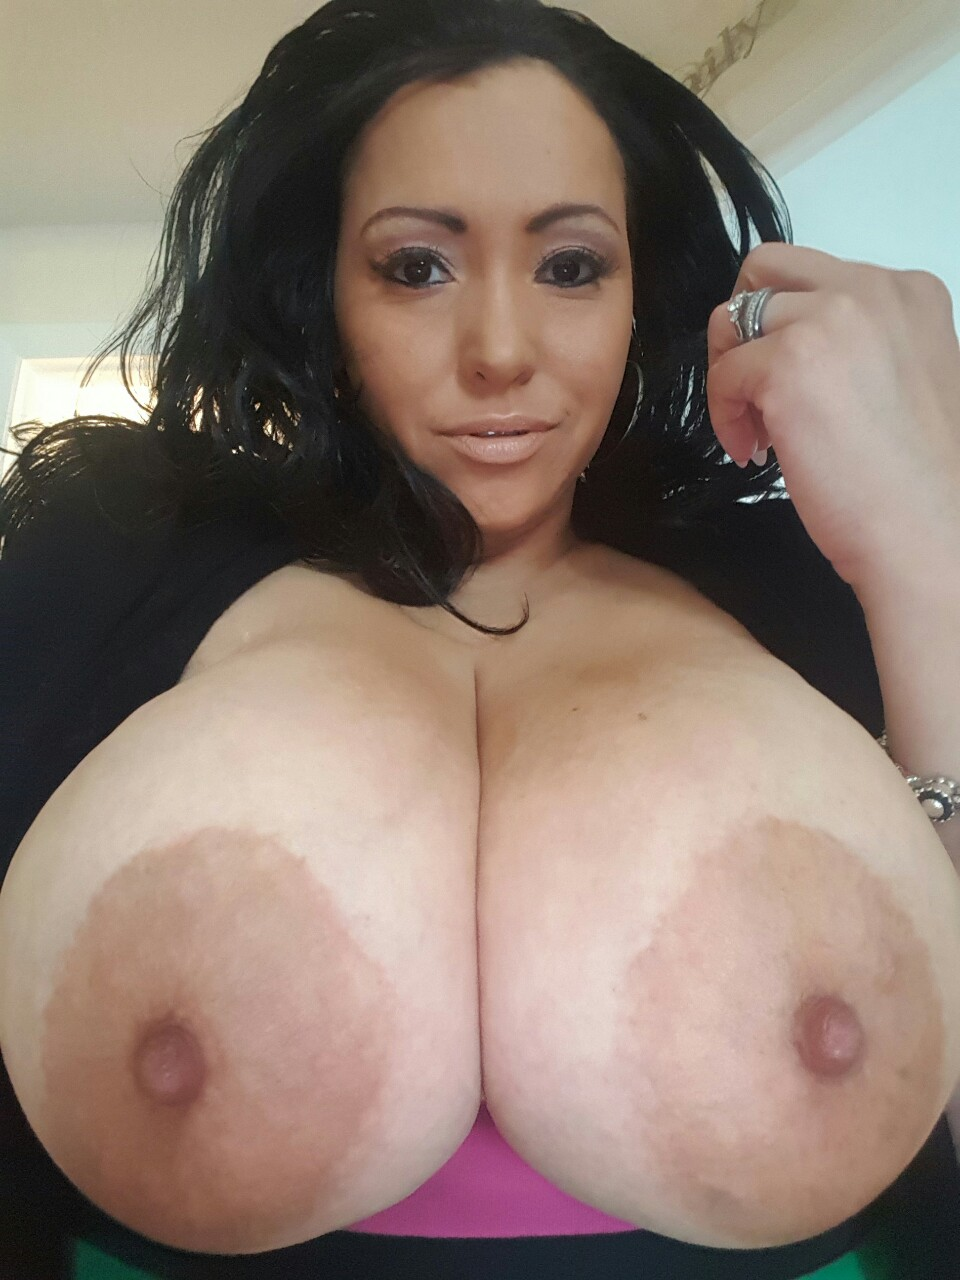 Own eating live pussy together we fucking shit Adriana irresistibly